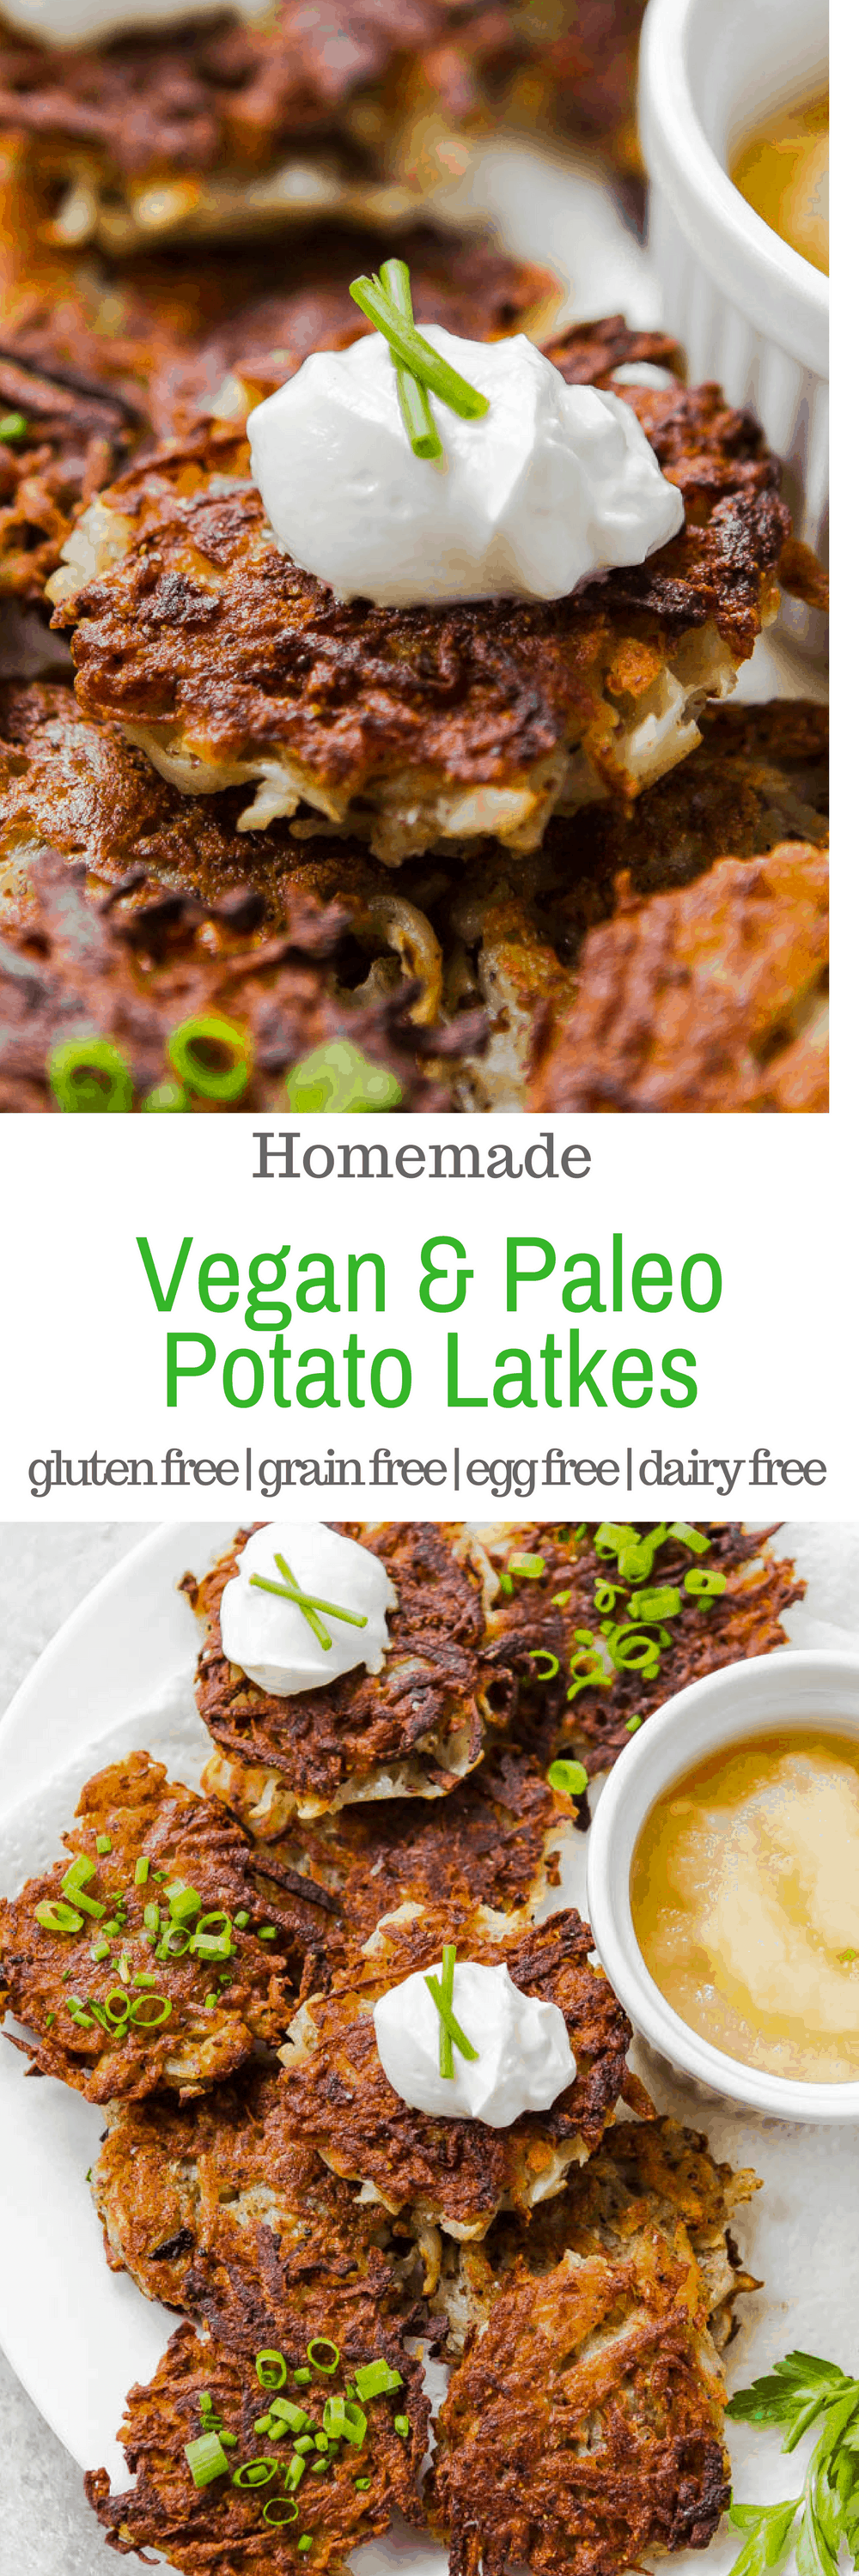 There are plenty of potato latke recipes out there for Hanukkah, but these are special because they contain NO gluten, grains, eggs, or dairy! #EggFree, #Glutenfree #grainfree #vegan #paleo #recipe #Hanukkah #Chanukah #recipe